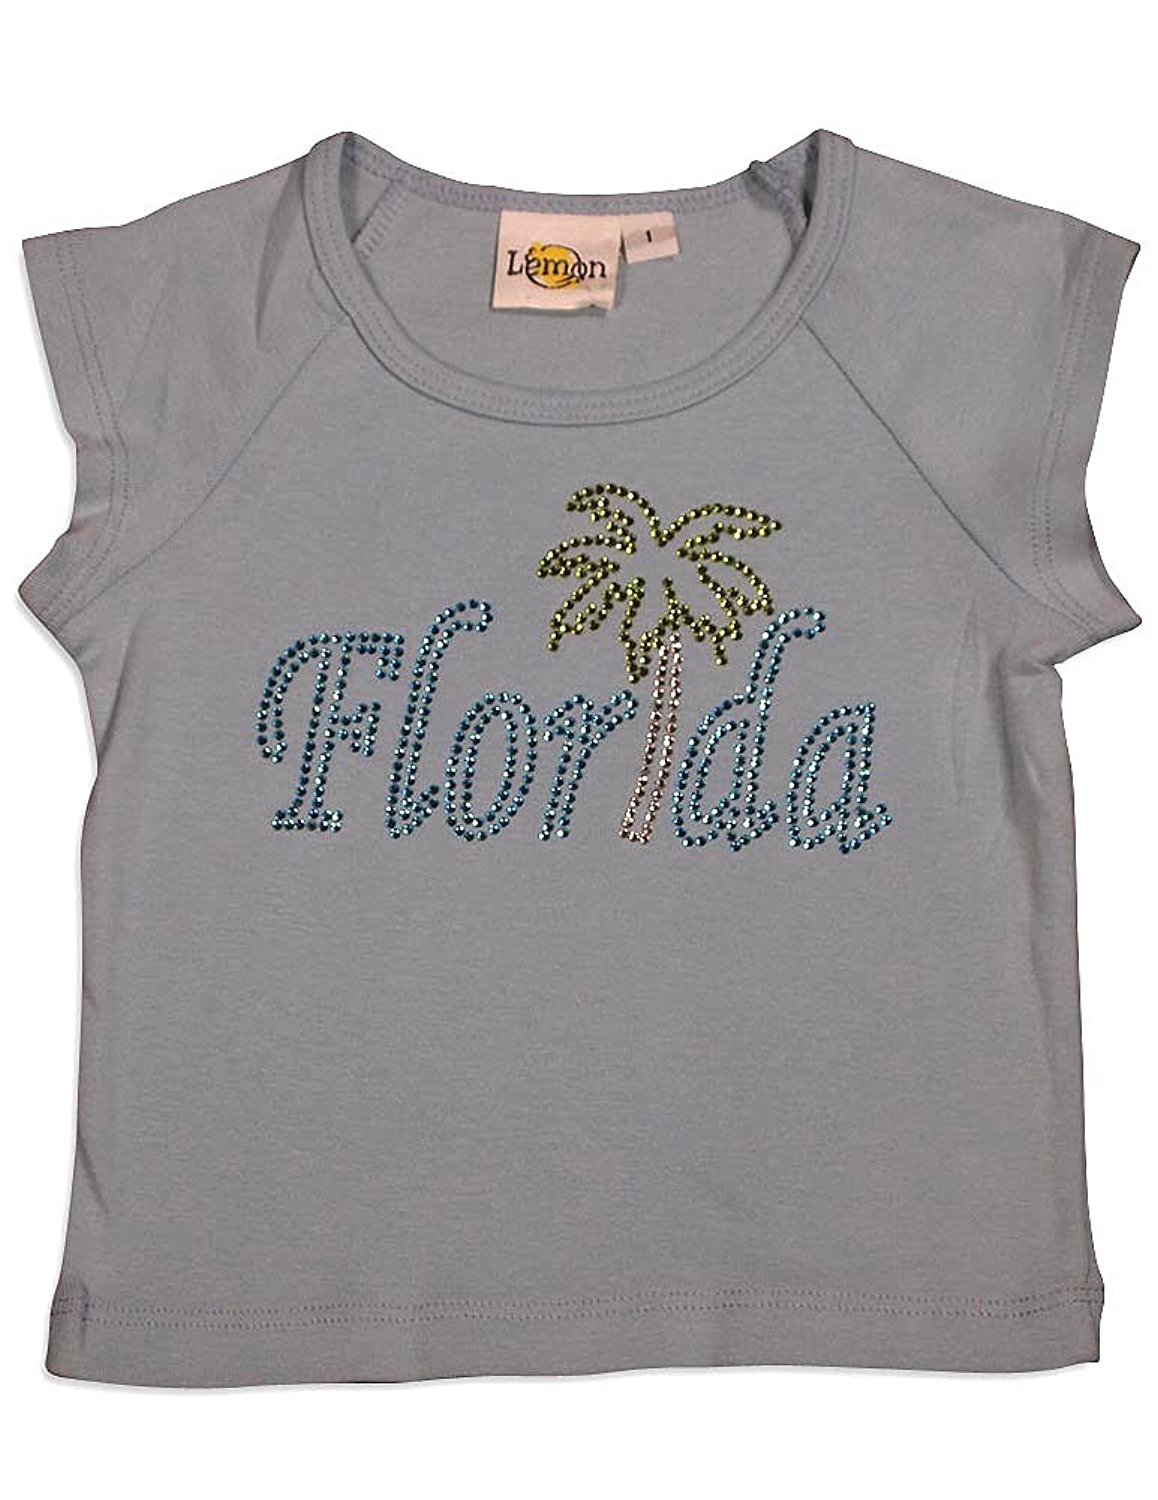 Lemon - Baby Girls Short Sleeve T-Shirt Light Blue Florida / 1